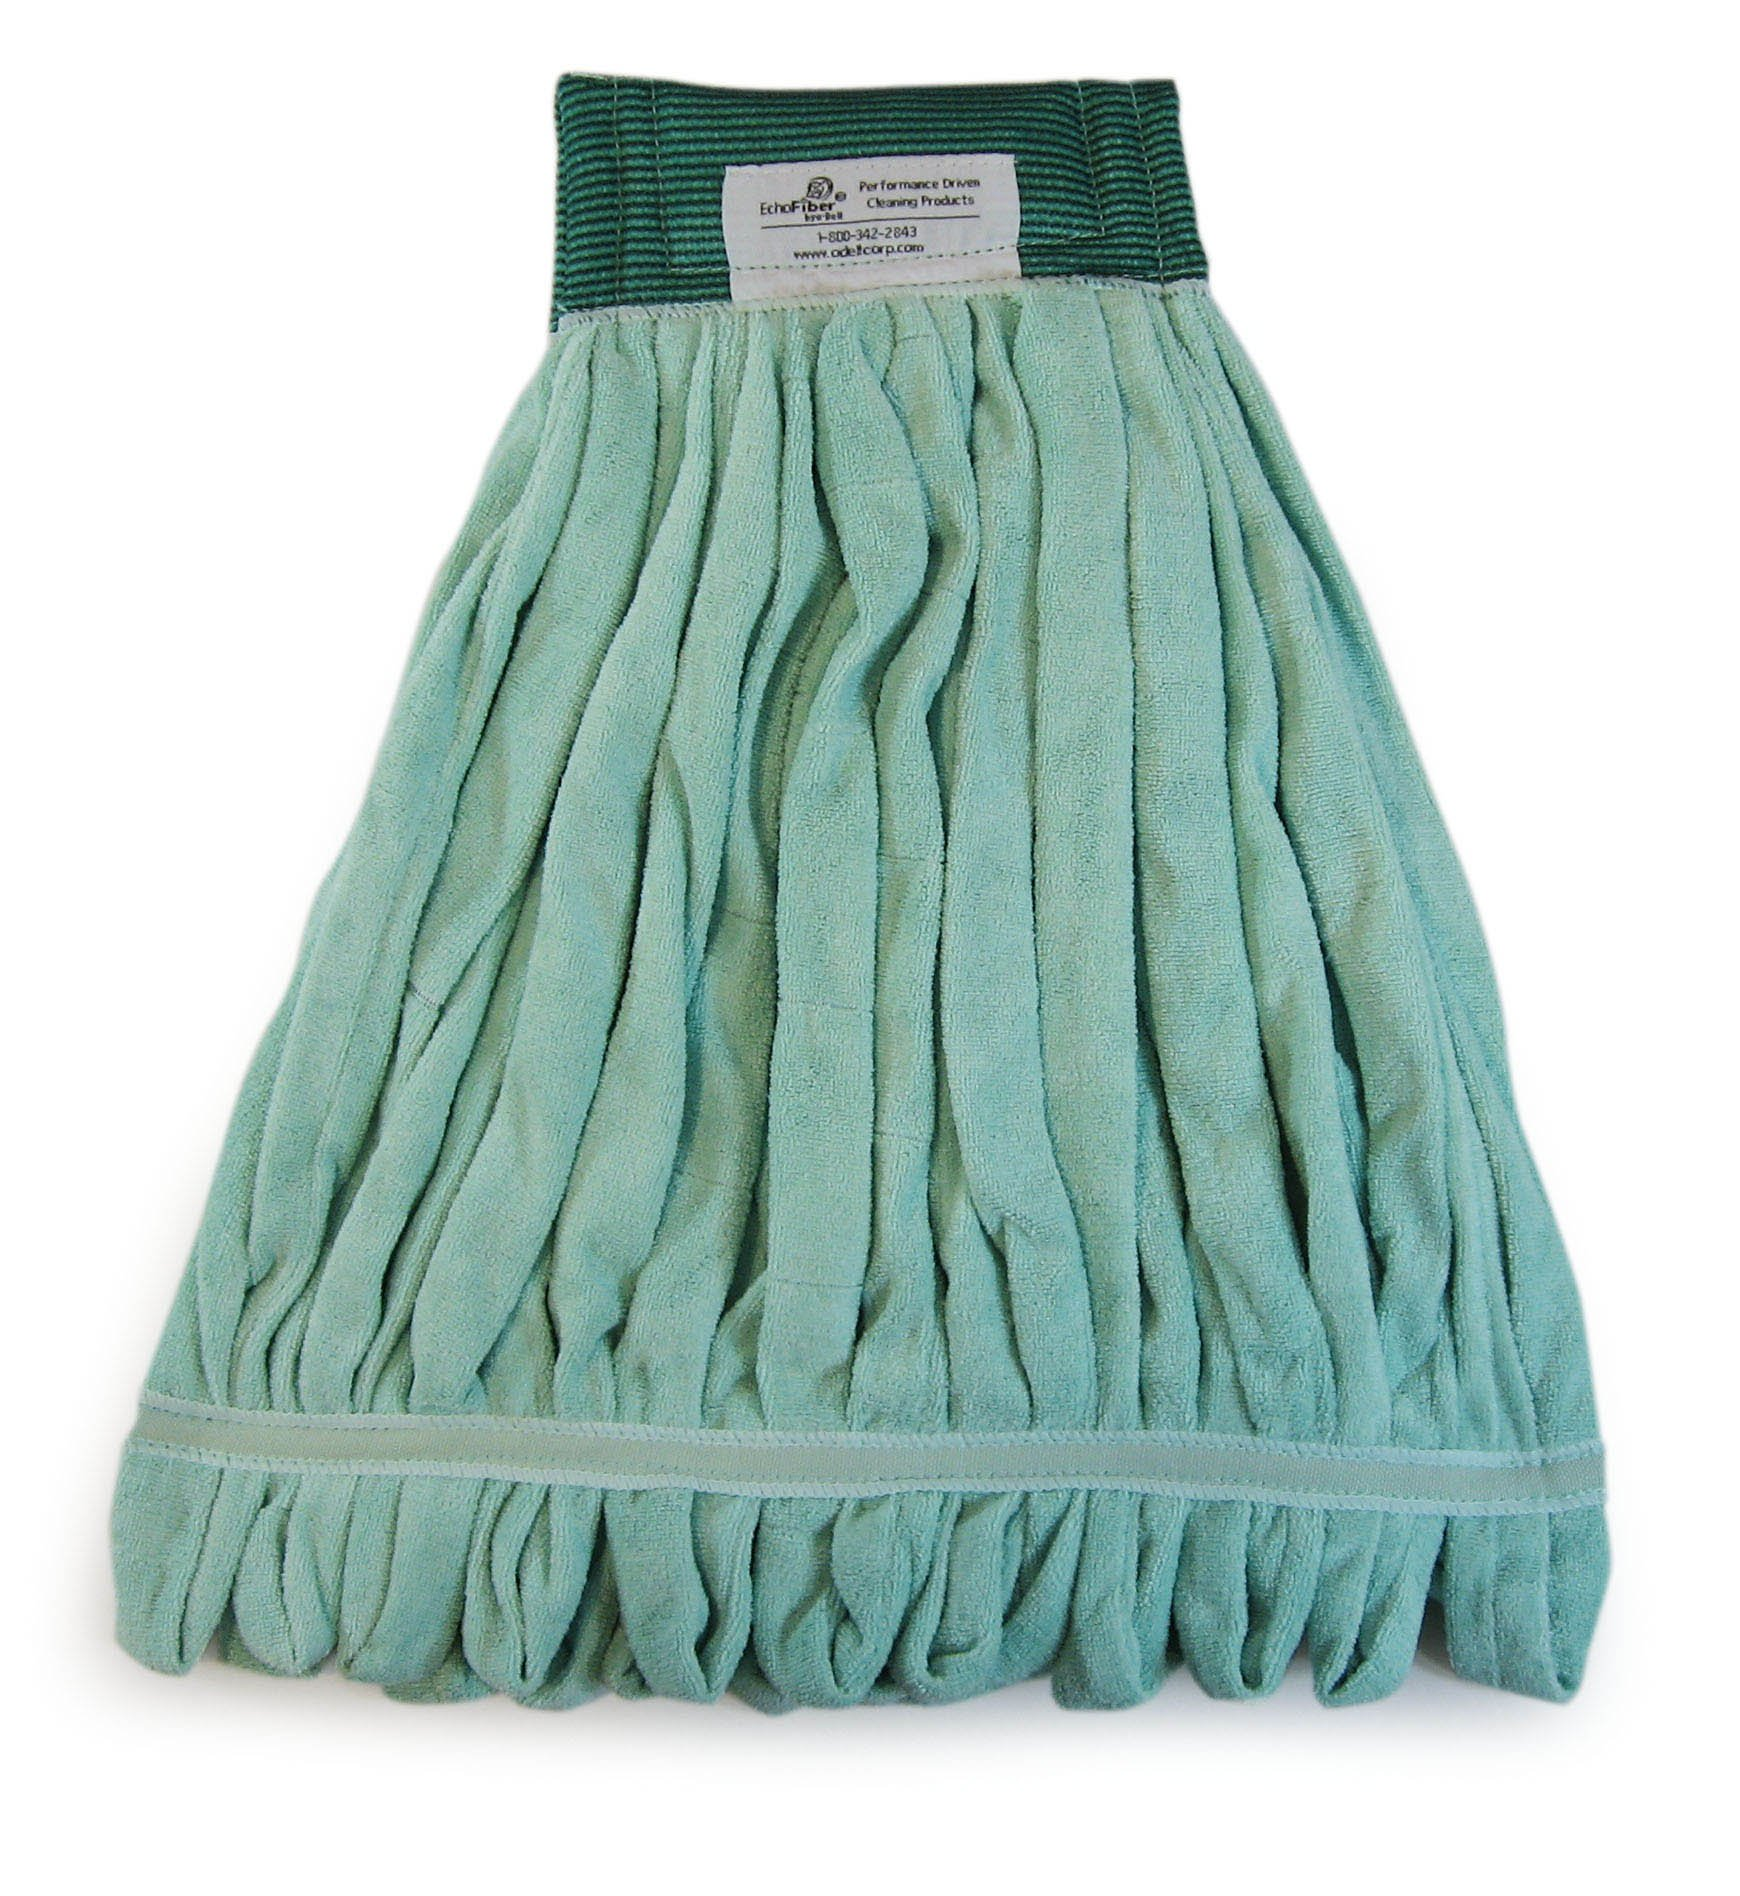 O'Dell EchoFiber Microfiber Loop Mop - Medium Green MWTM-G